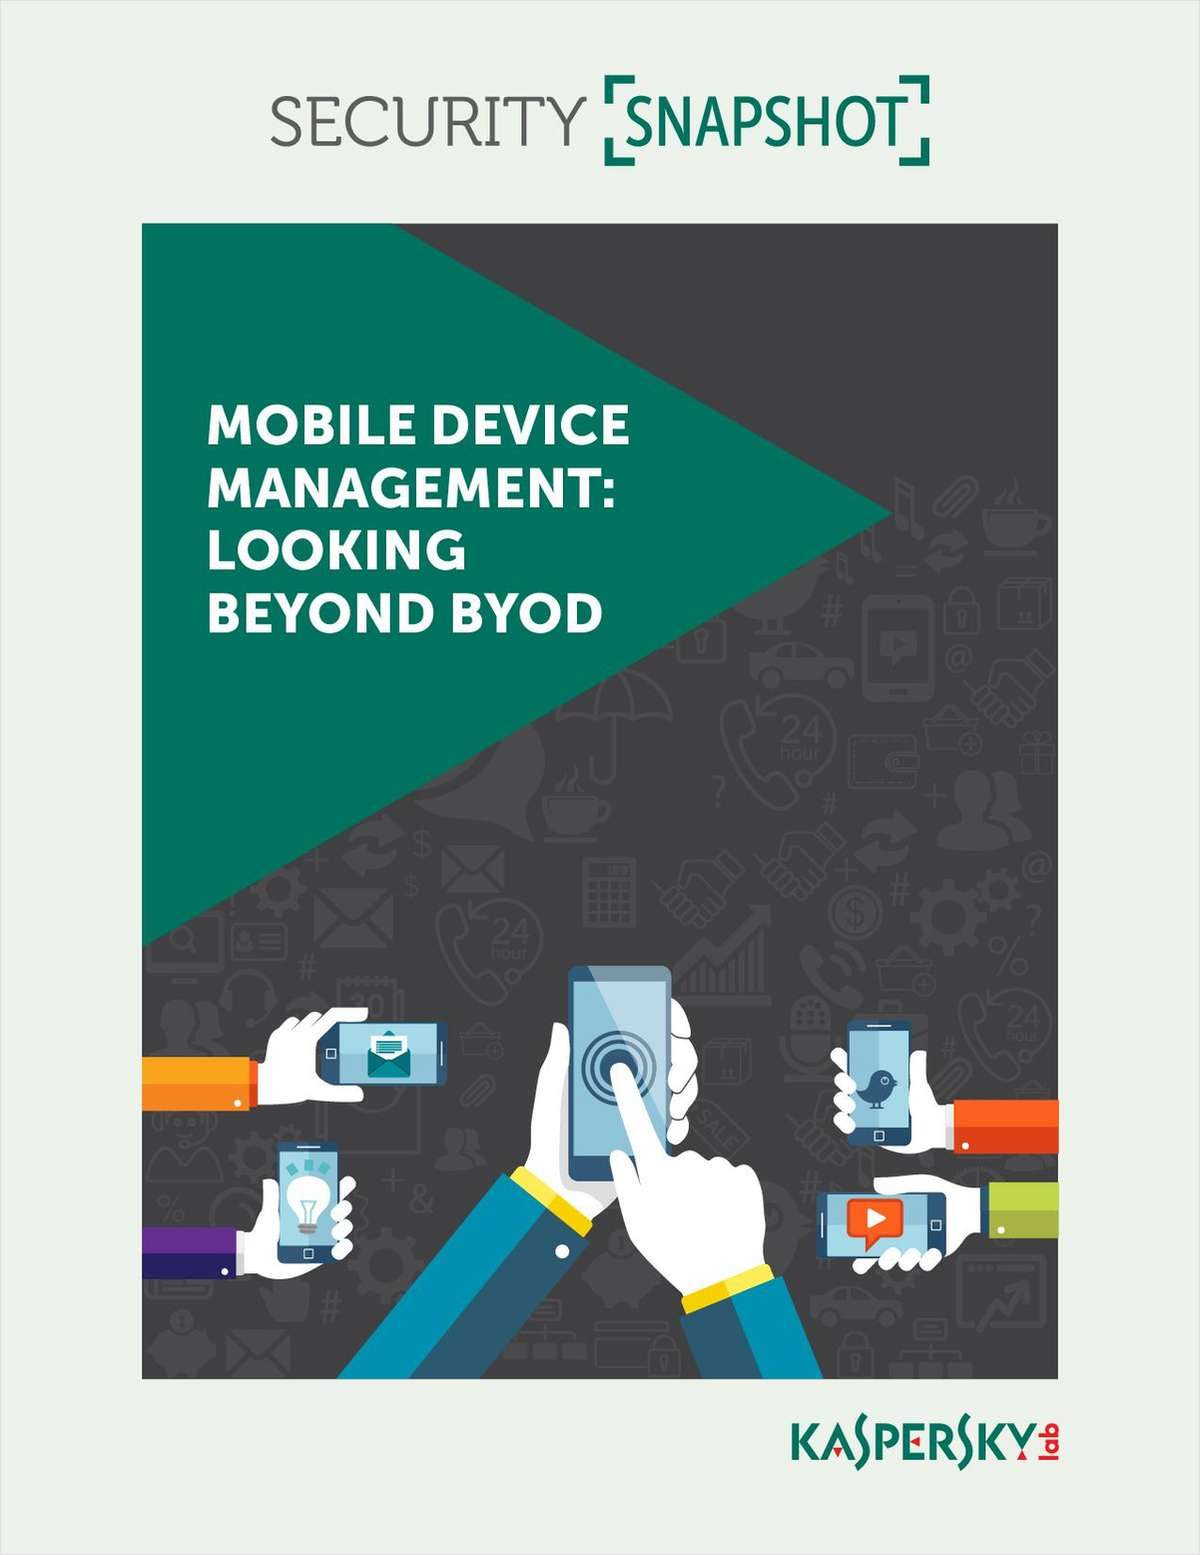 Mobile Device Management: Looking Beyond BYOD